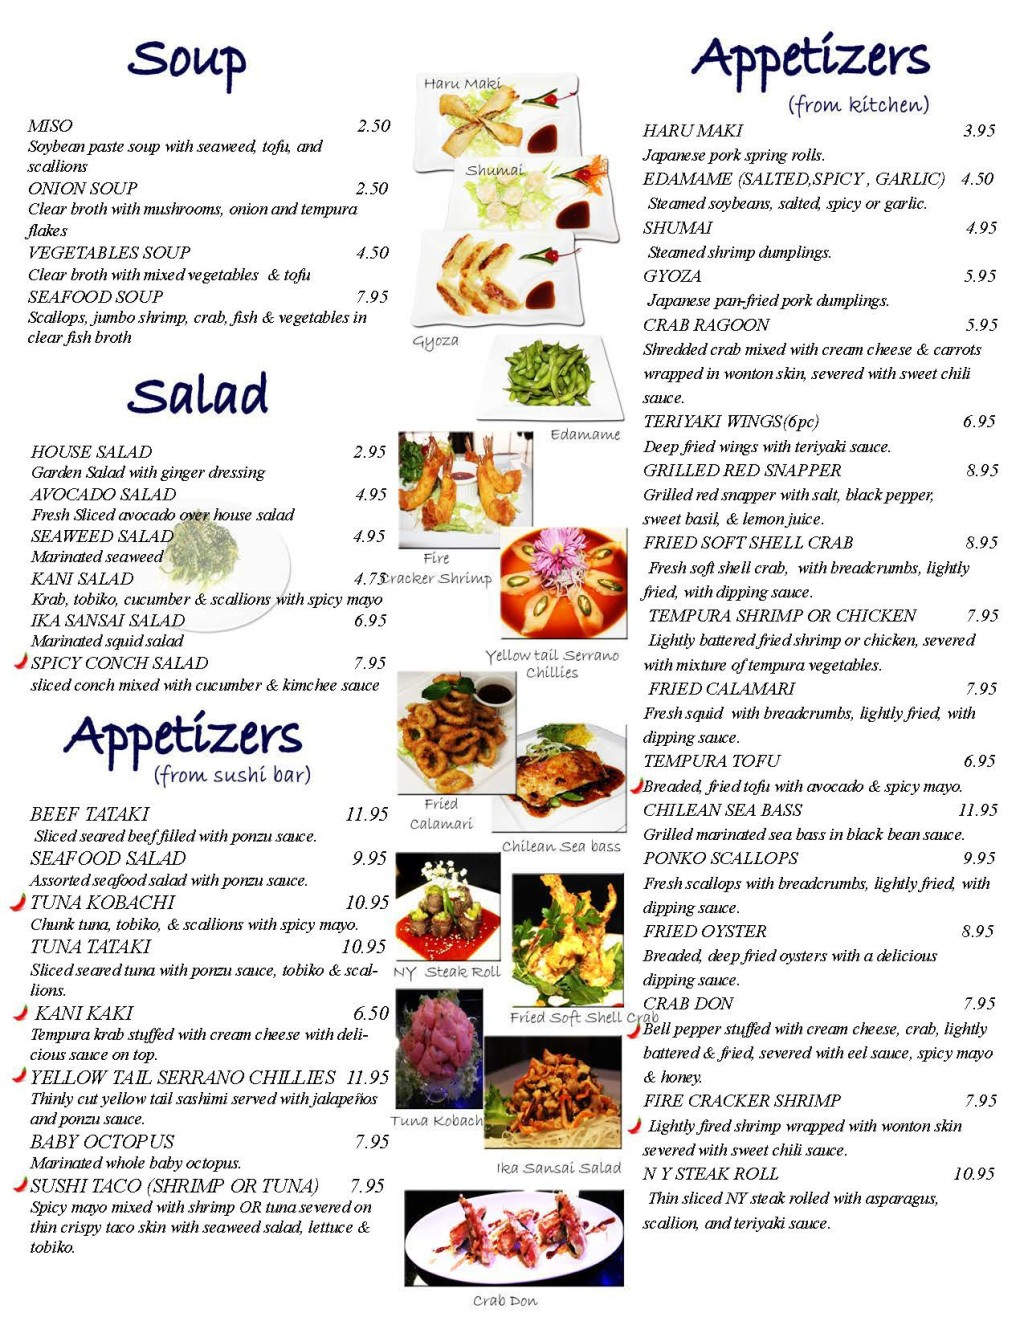 http://a-akisushi.com/wp-content/uploads/2016/03/newest-menu-page-1-small-1024x1325.jpg